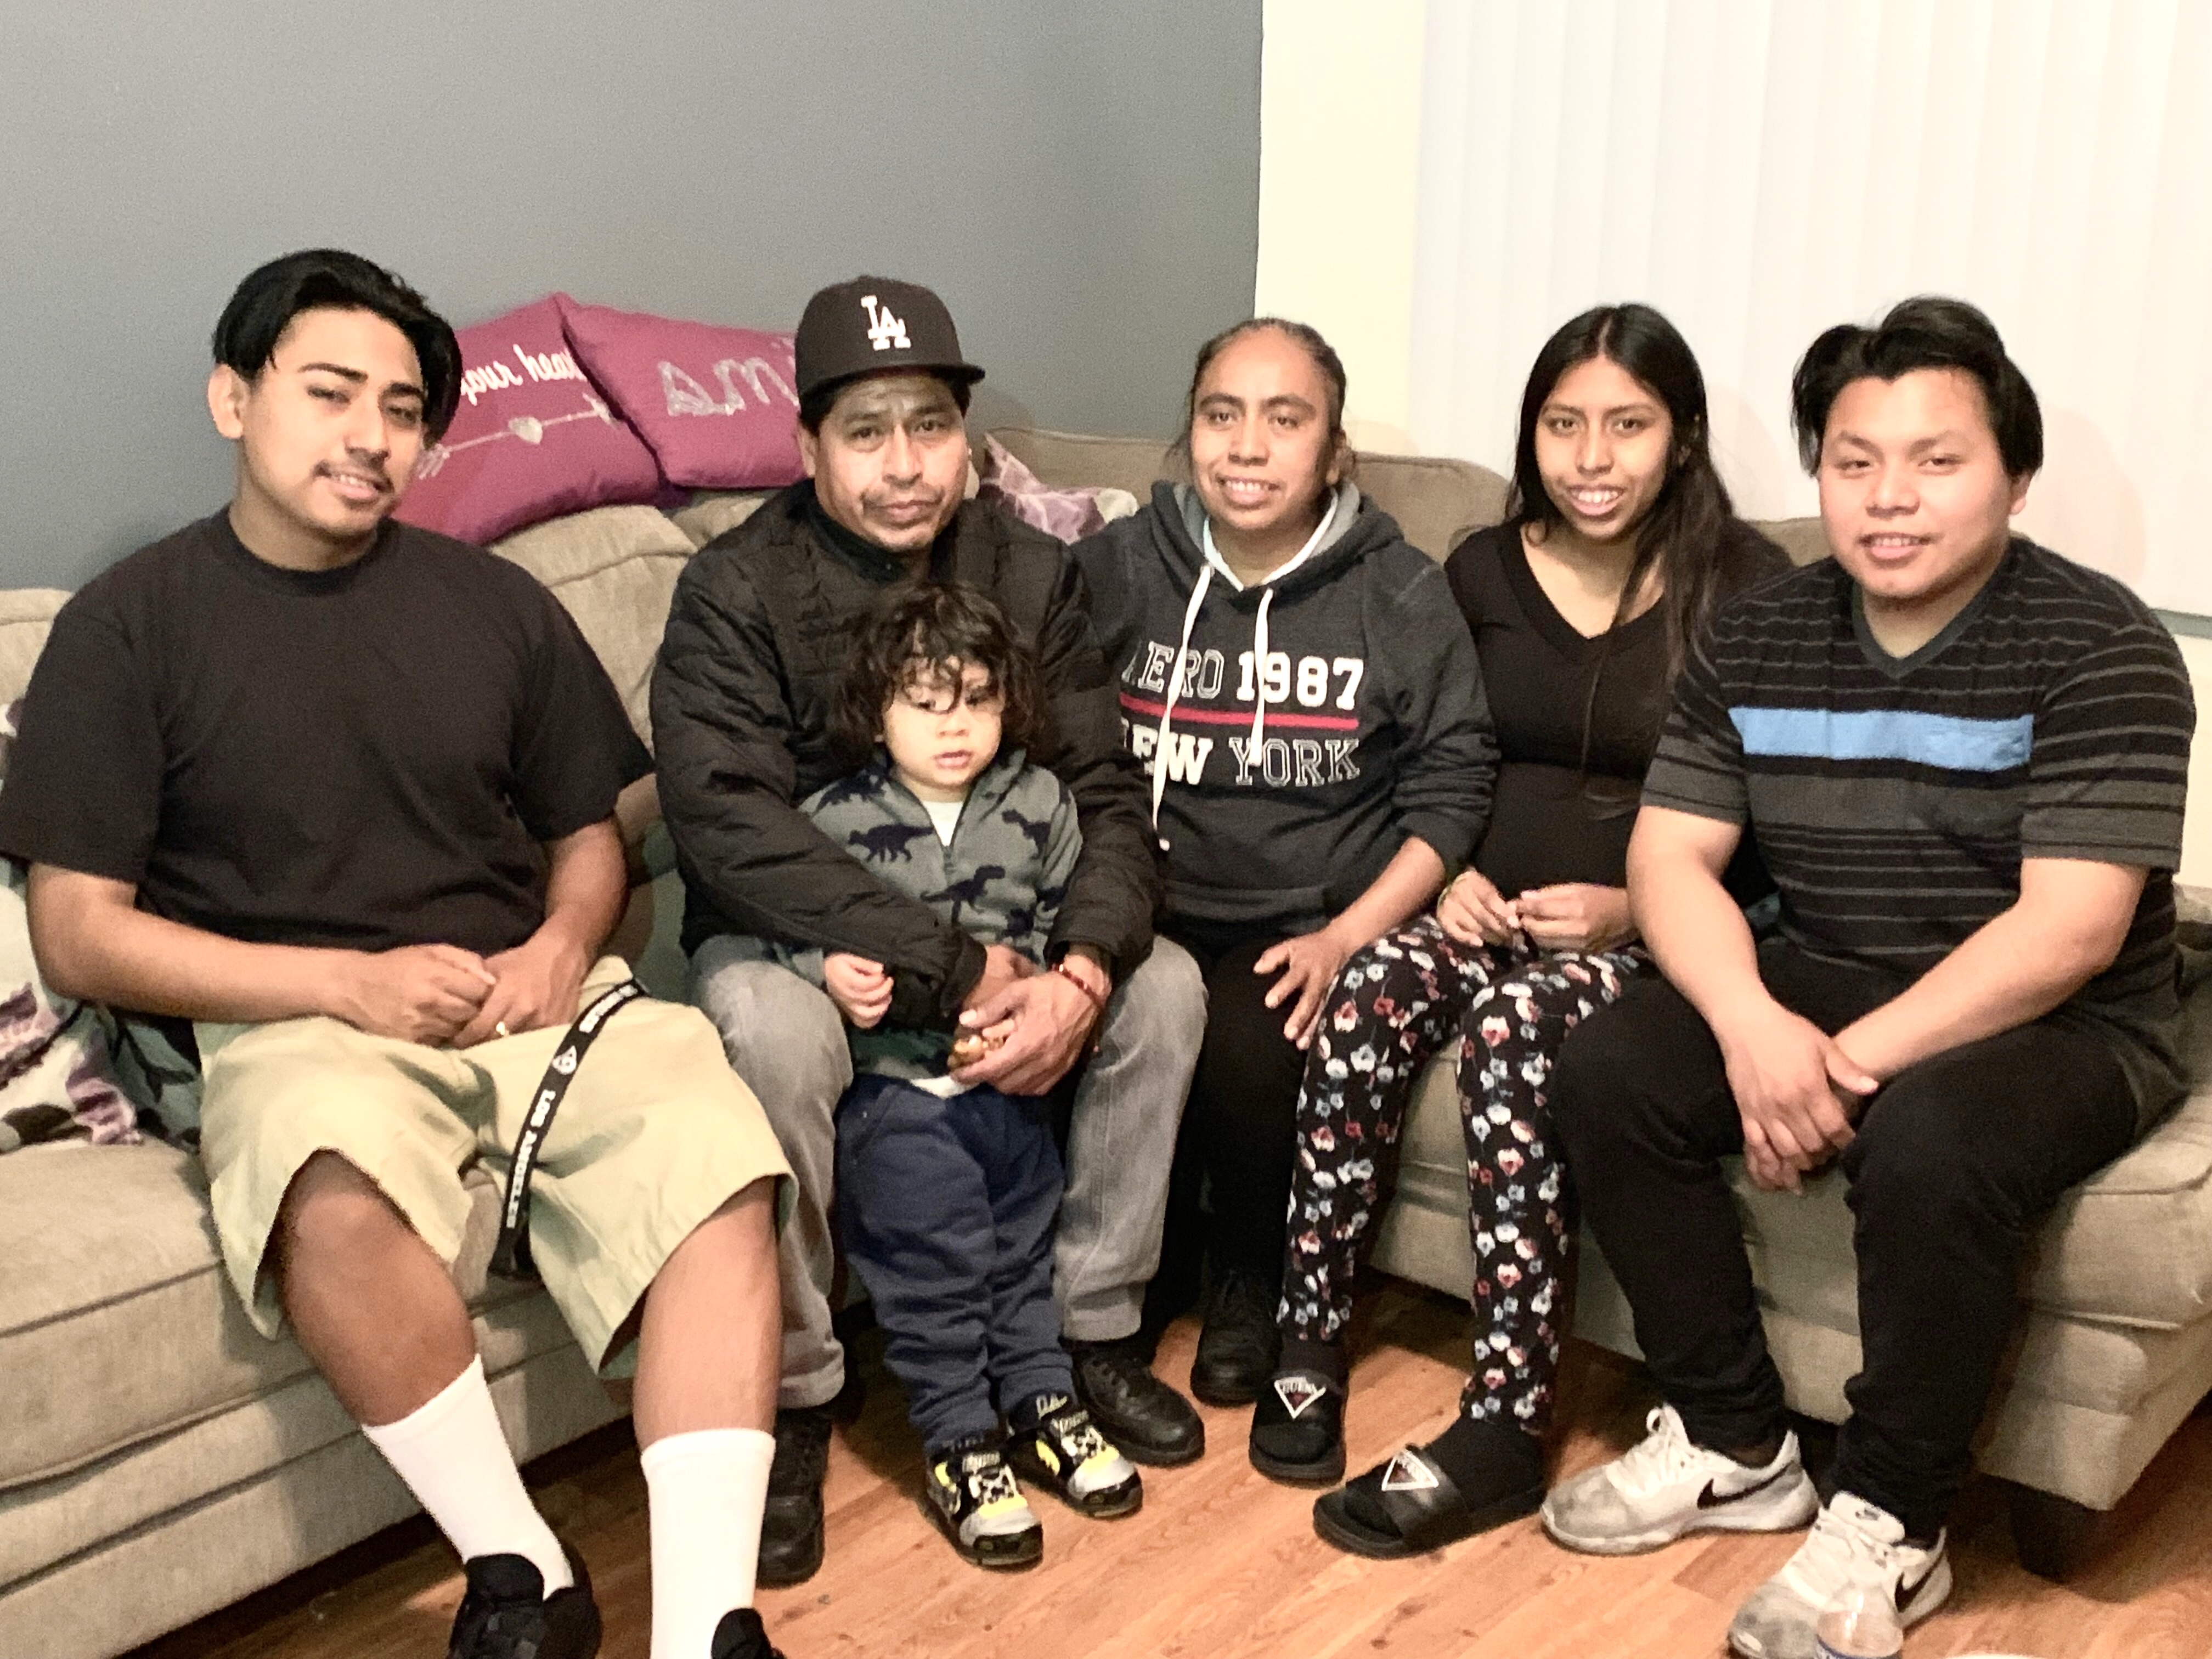 FSC, Bresee support Martinez family through tragedy